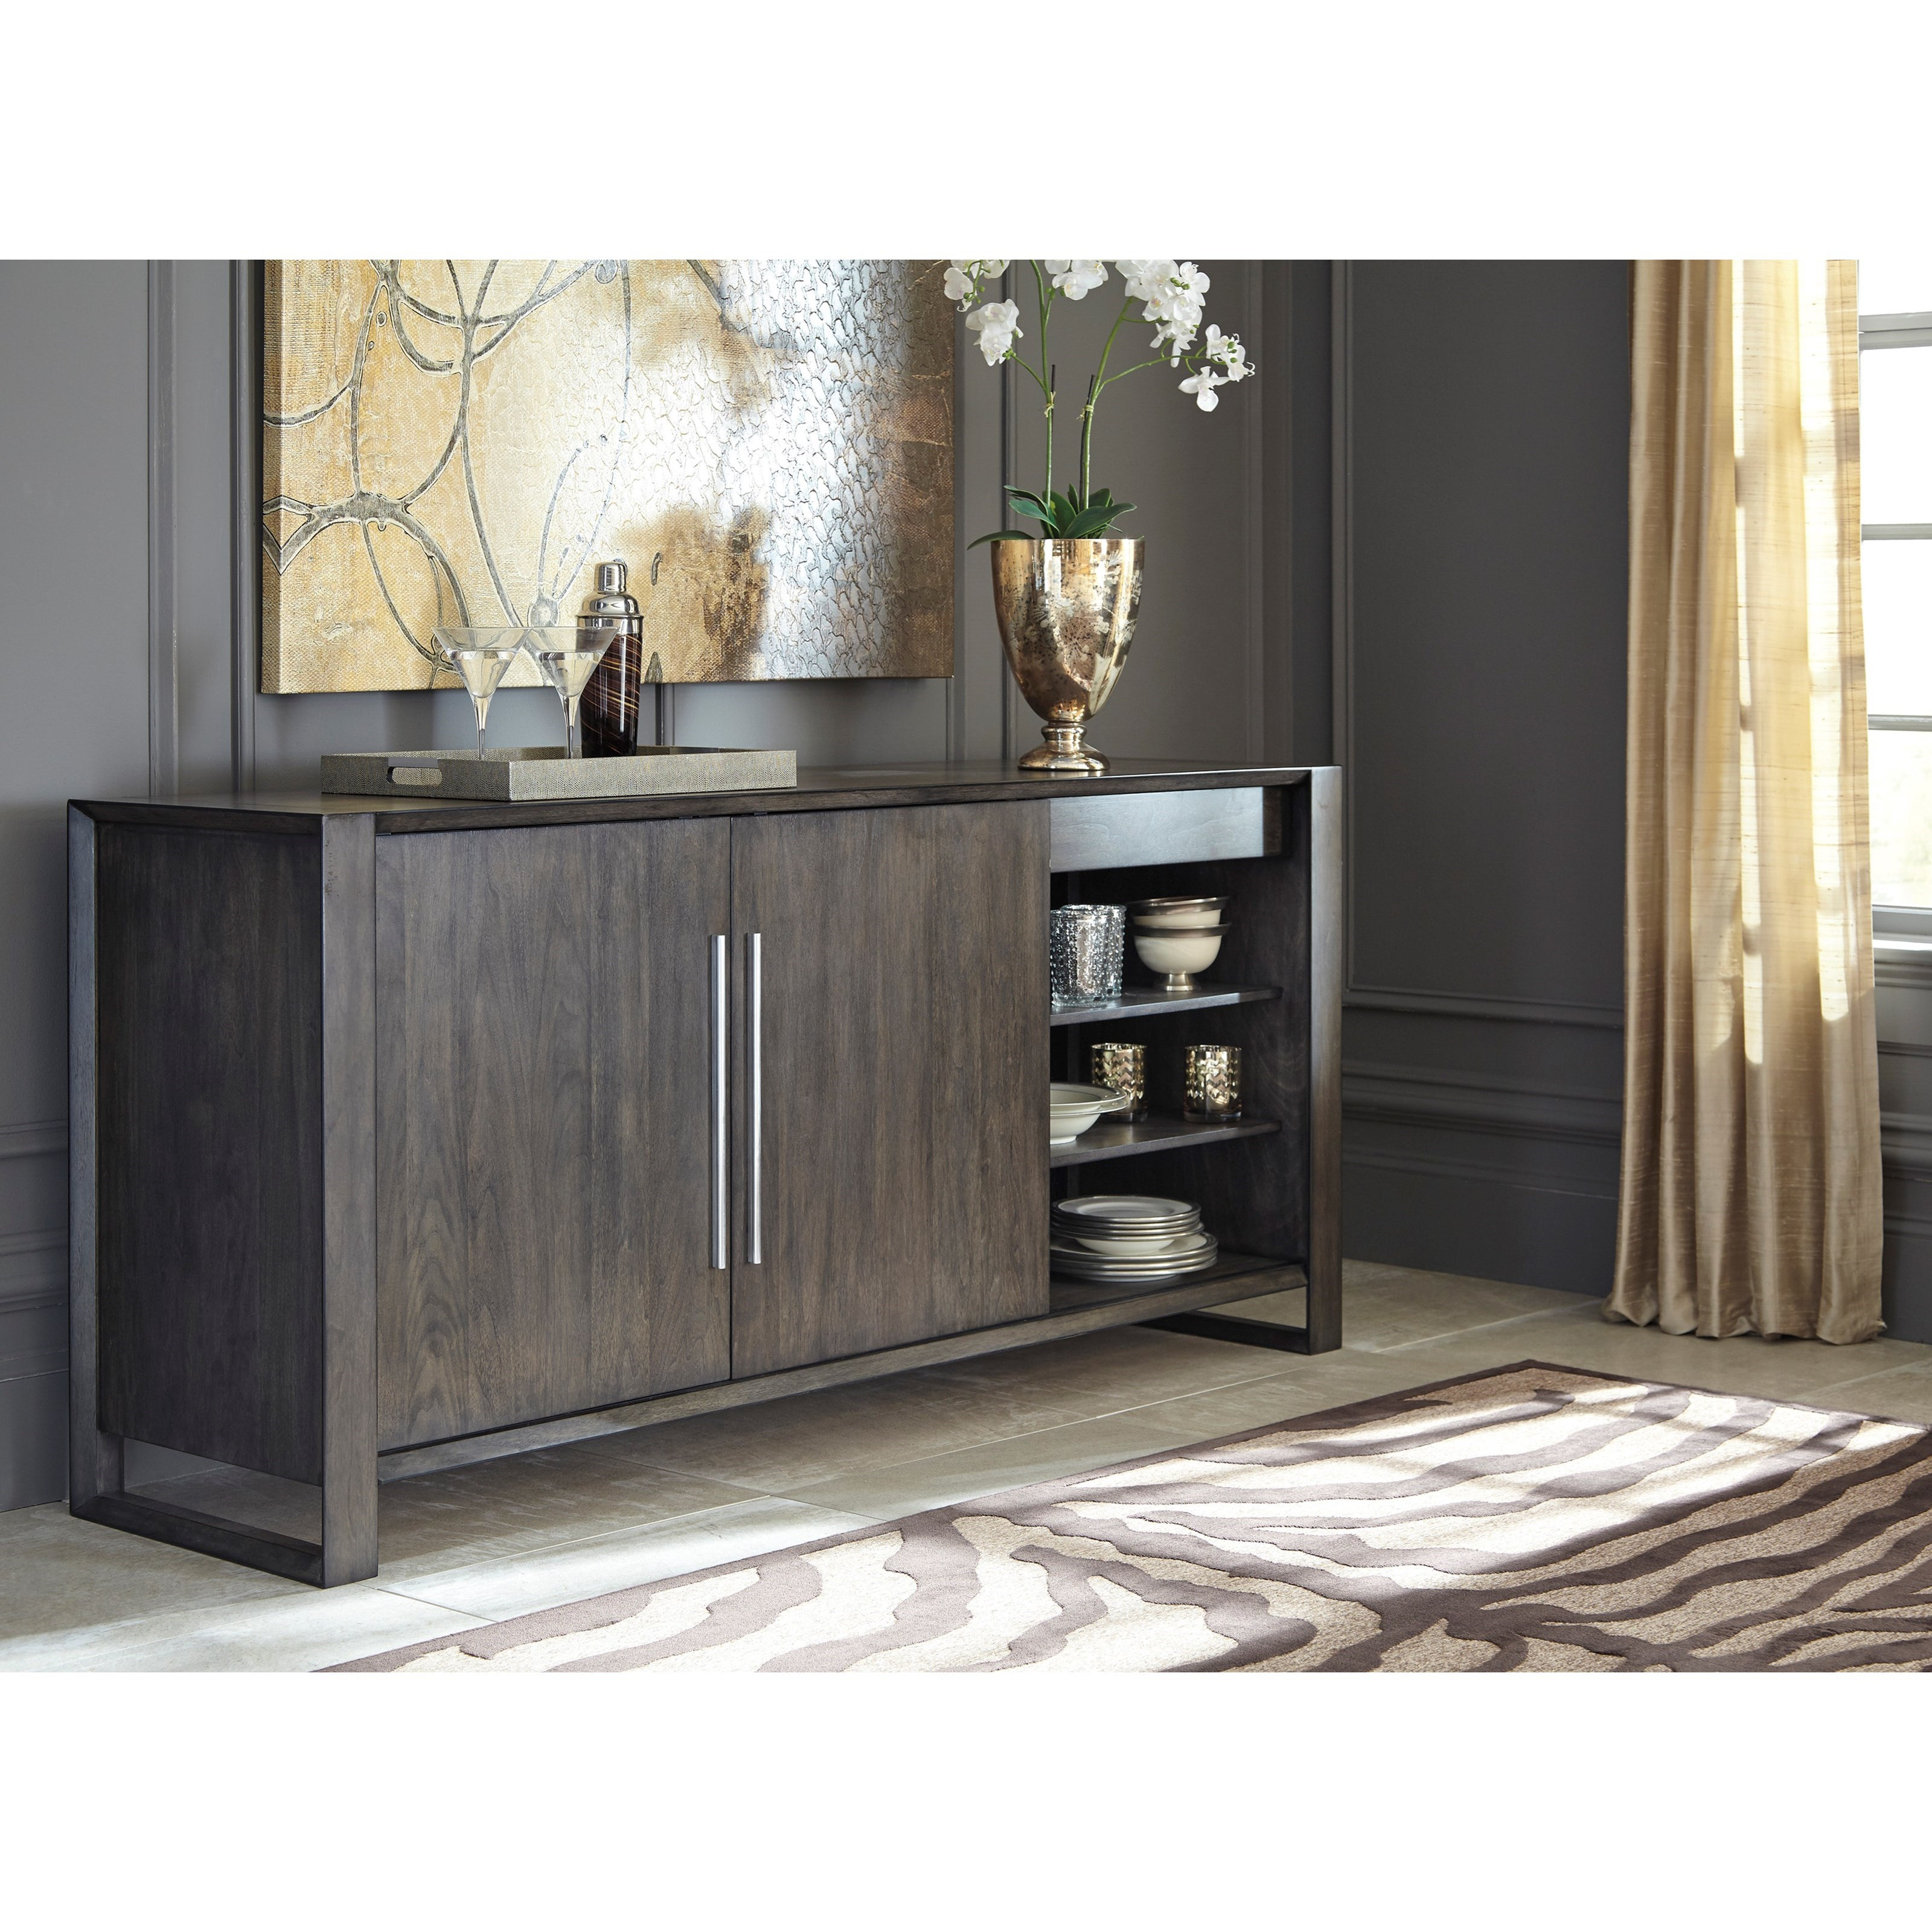 Signature design by ashley chadoni d624 60 contemporary for Wine and design west ashley